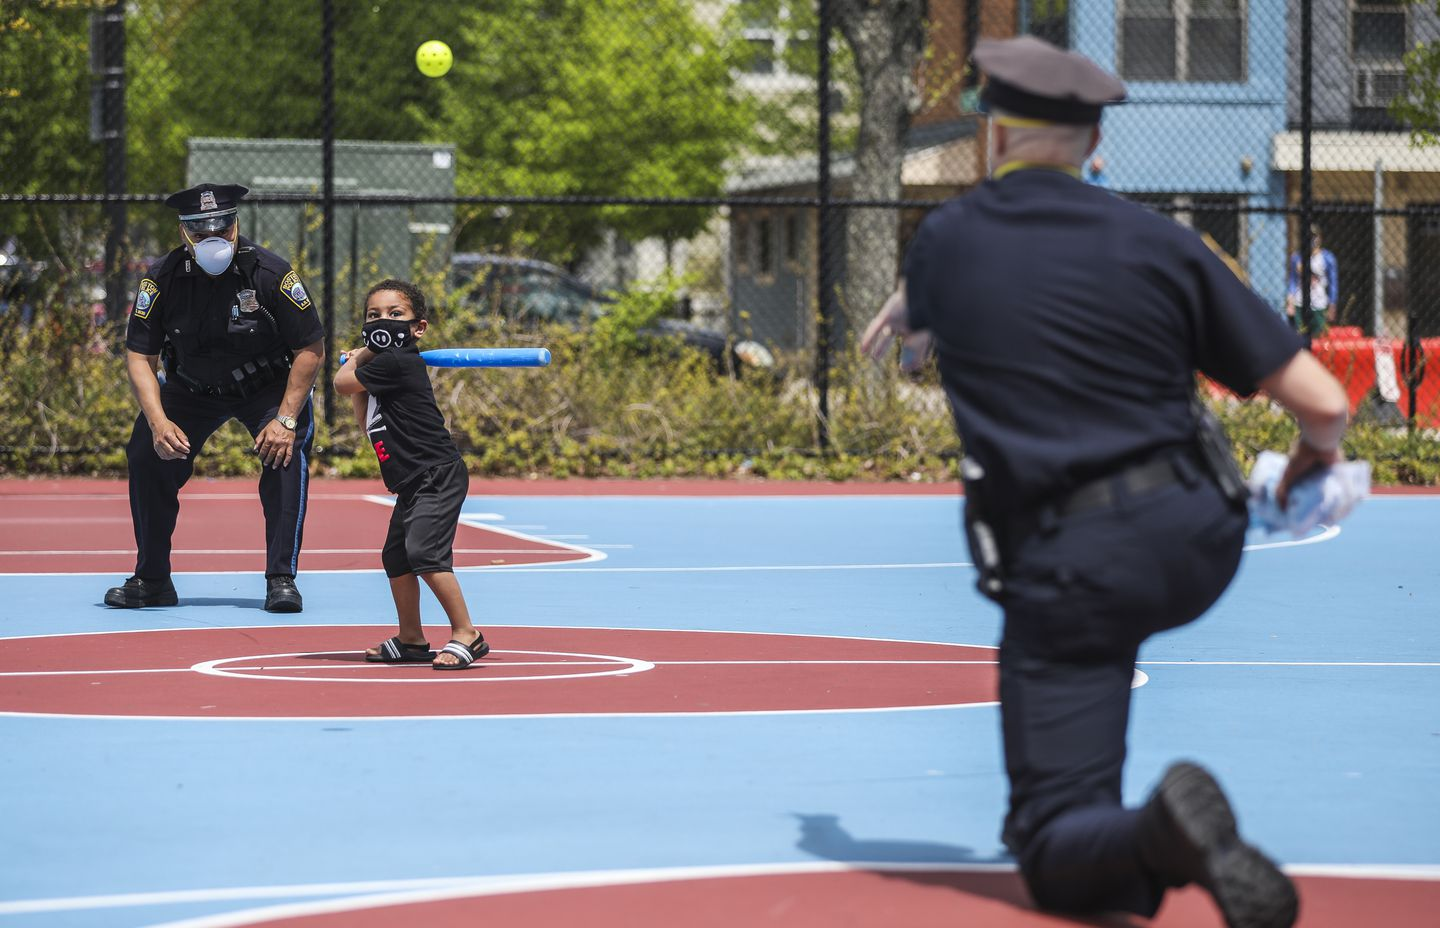 Despite praise, 'community policing' in Boston does not work for everyone, experts say